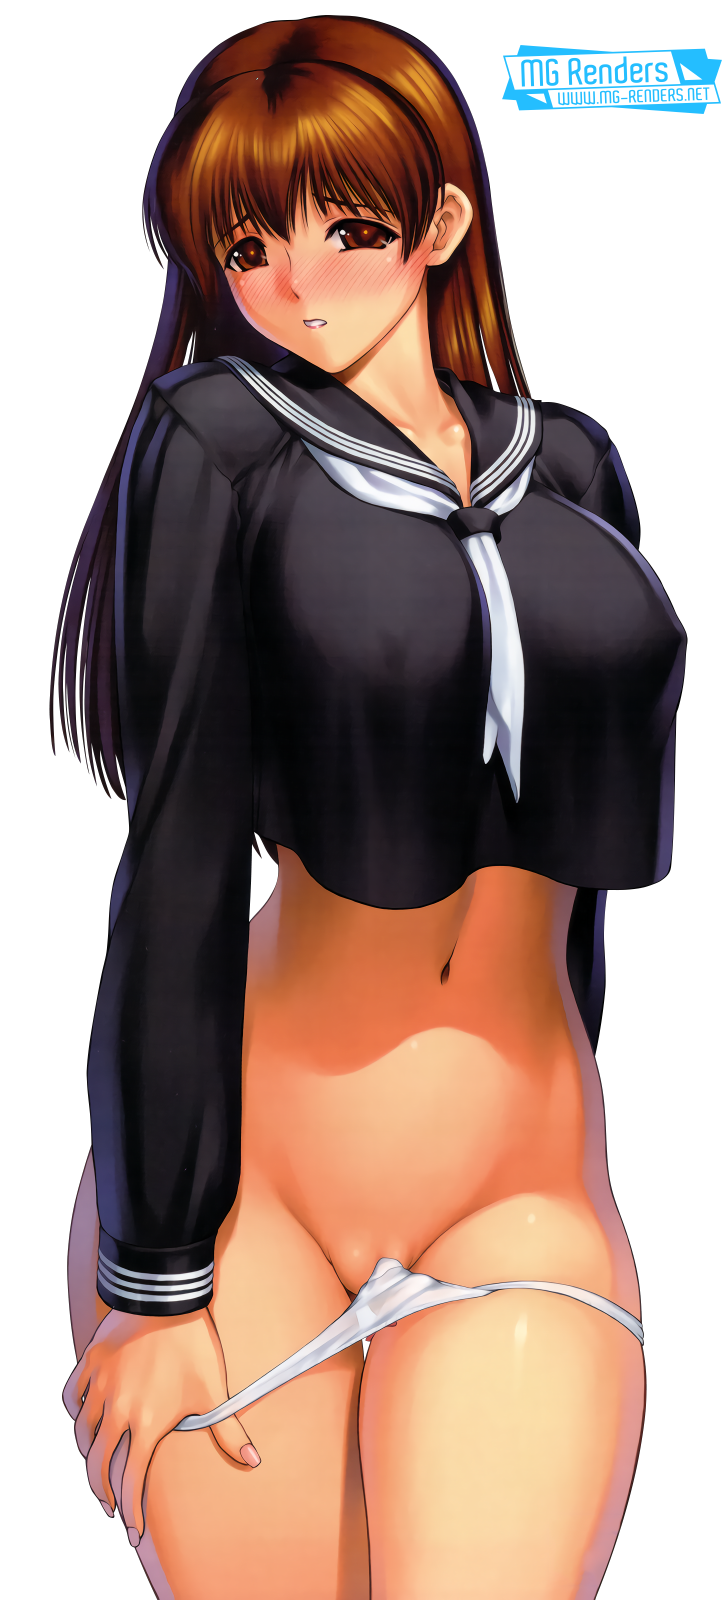 Tags: Anime, Render,  Dead or Alive,  Huge Breasts,  Kasumi,  Pantsu,  PNG, Image, Picture